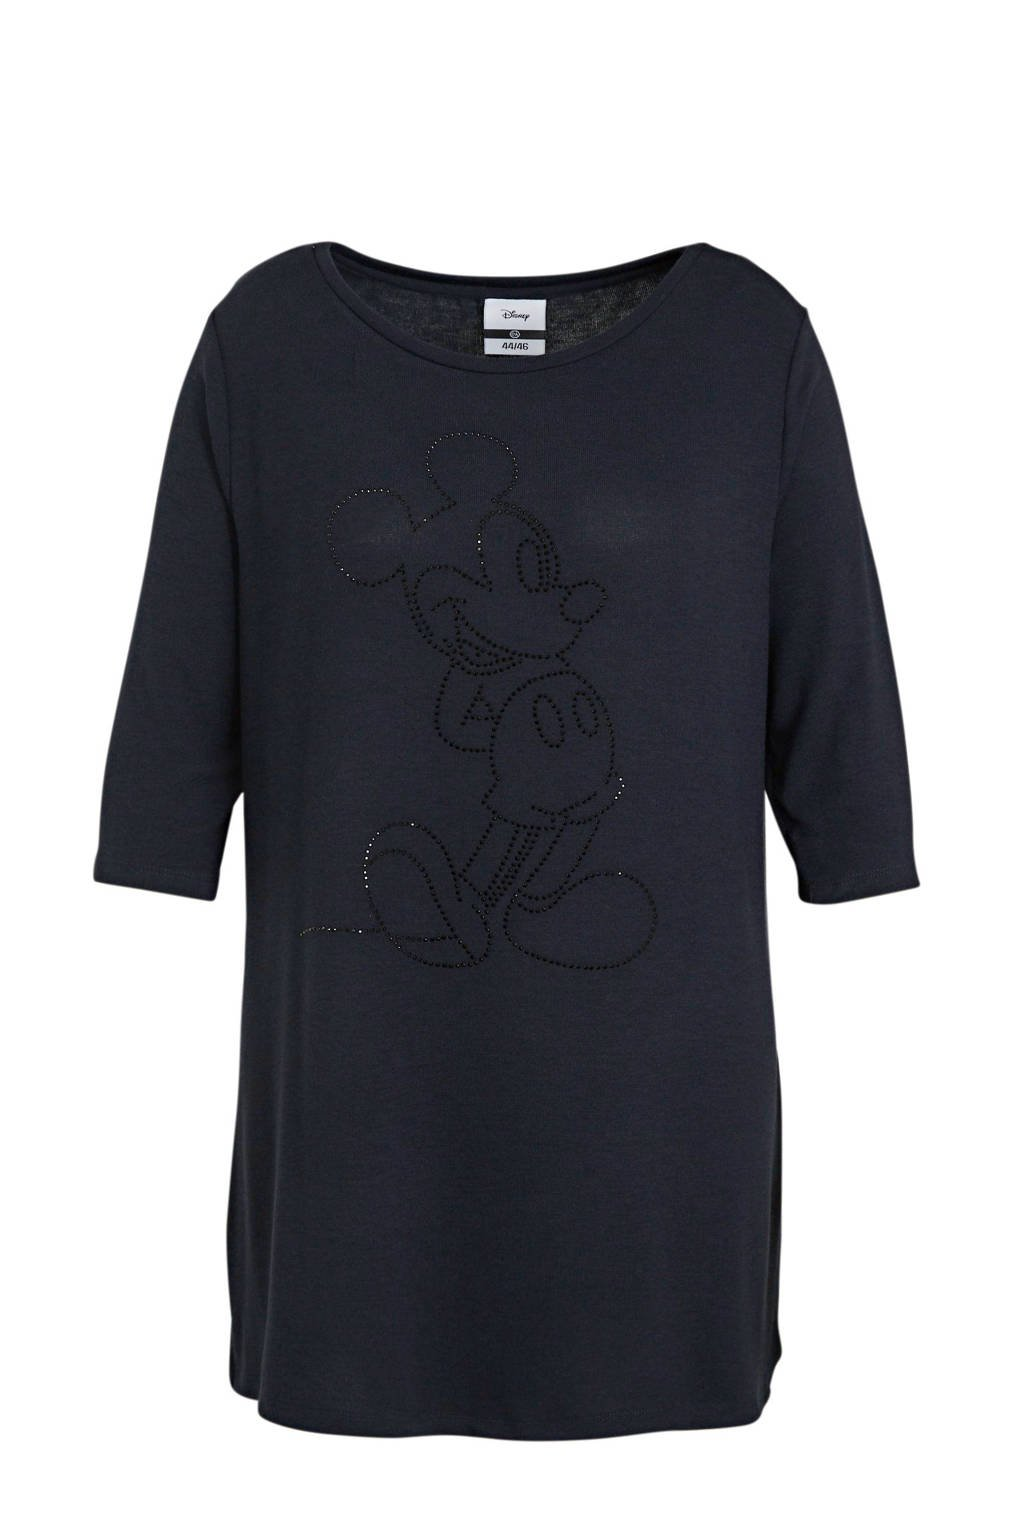 Disney @ C&A gemêleerd Mickey Mouse T-shirt donkerblauw, Donkerblauw